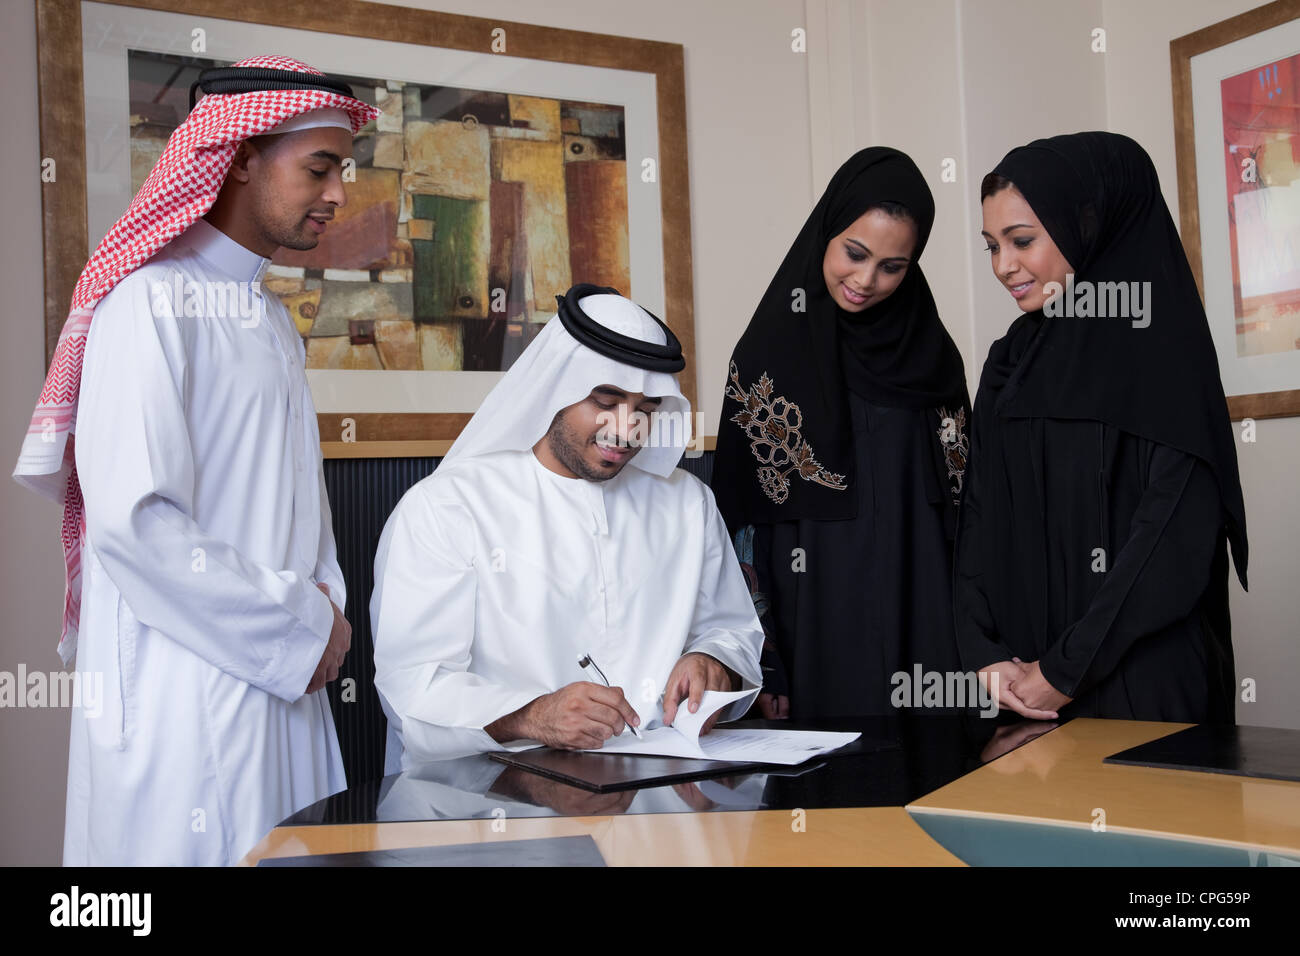 Arab businessman signing document, colleagues standing on the side. - Stock Image